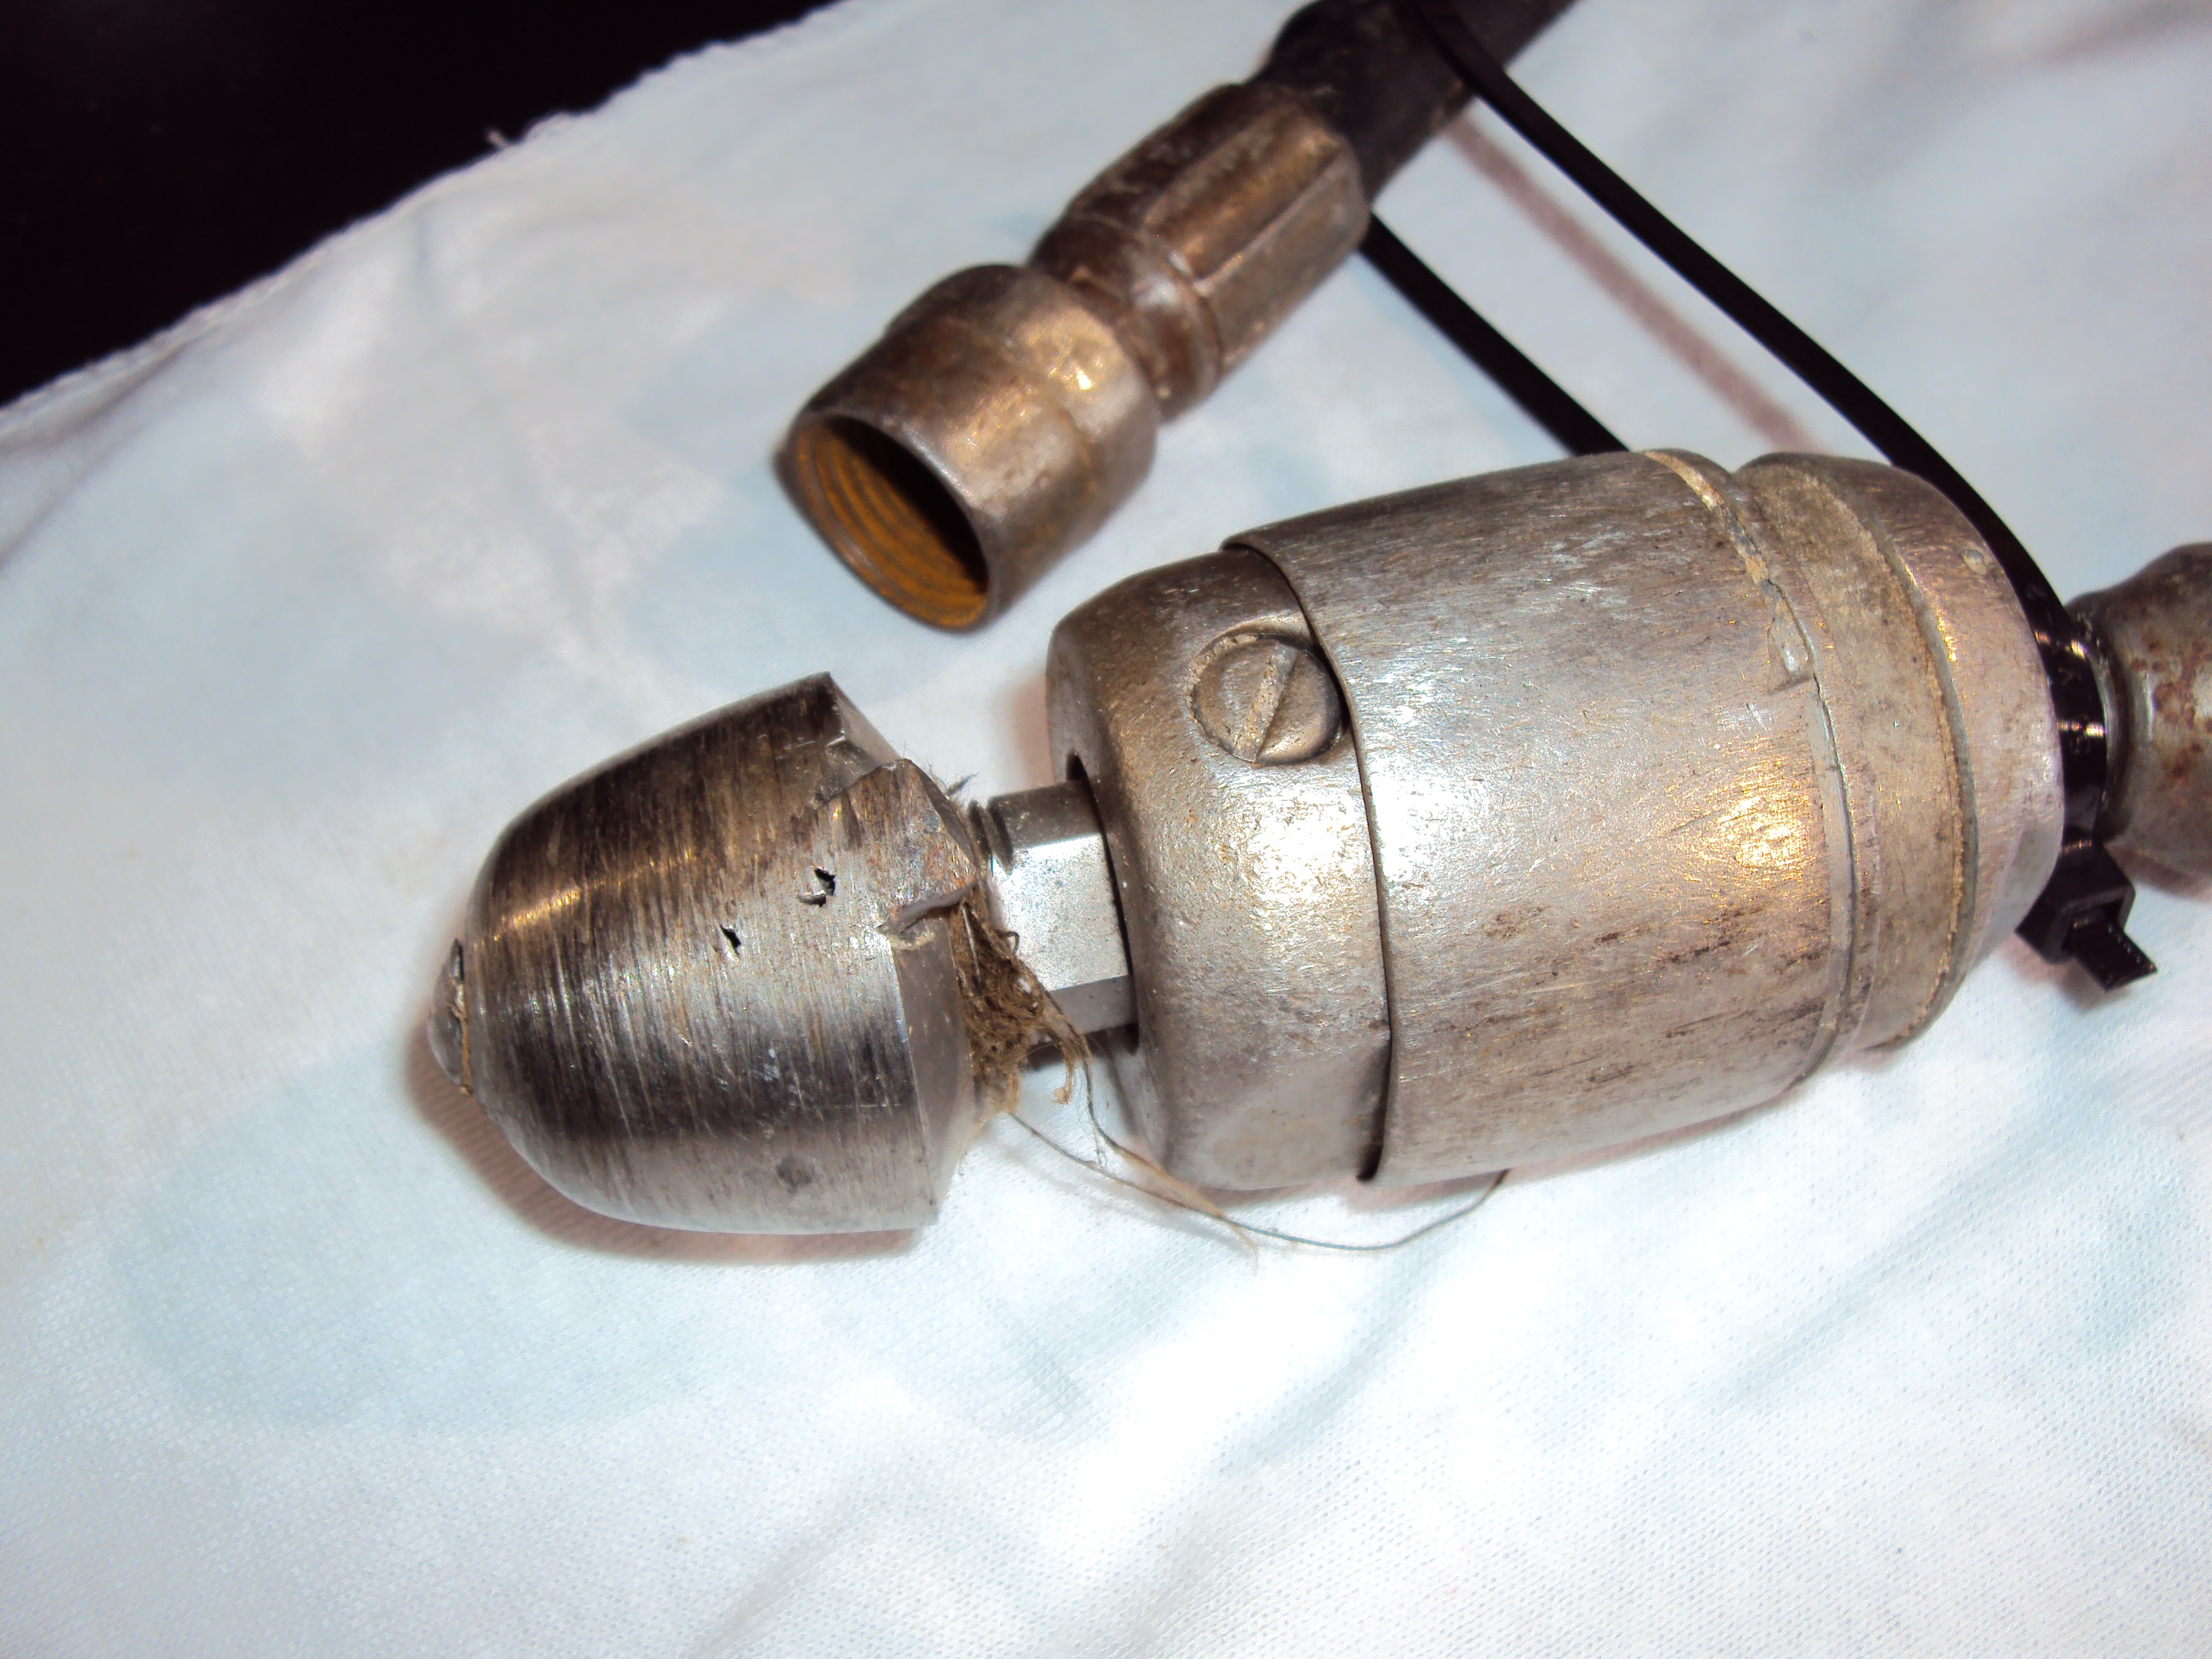 BEFORE - Old worn nozzle